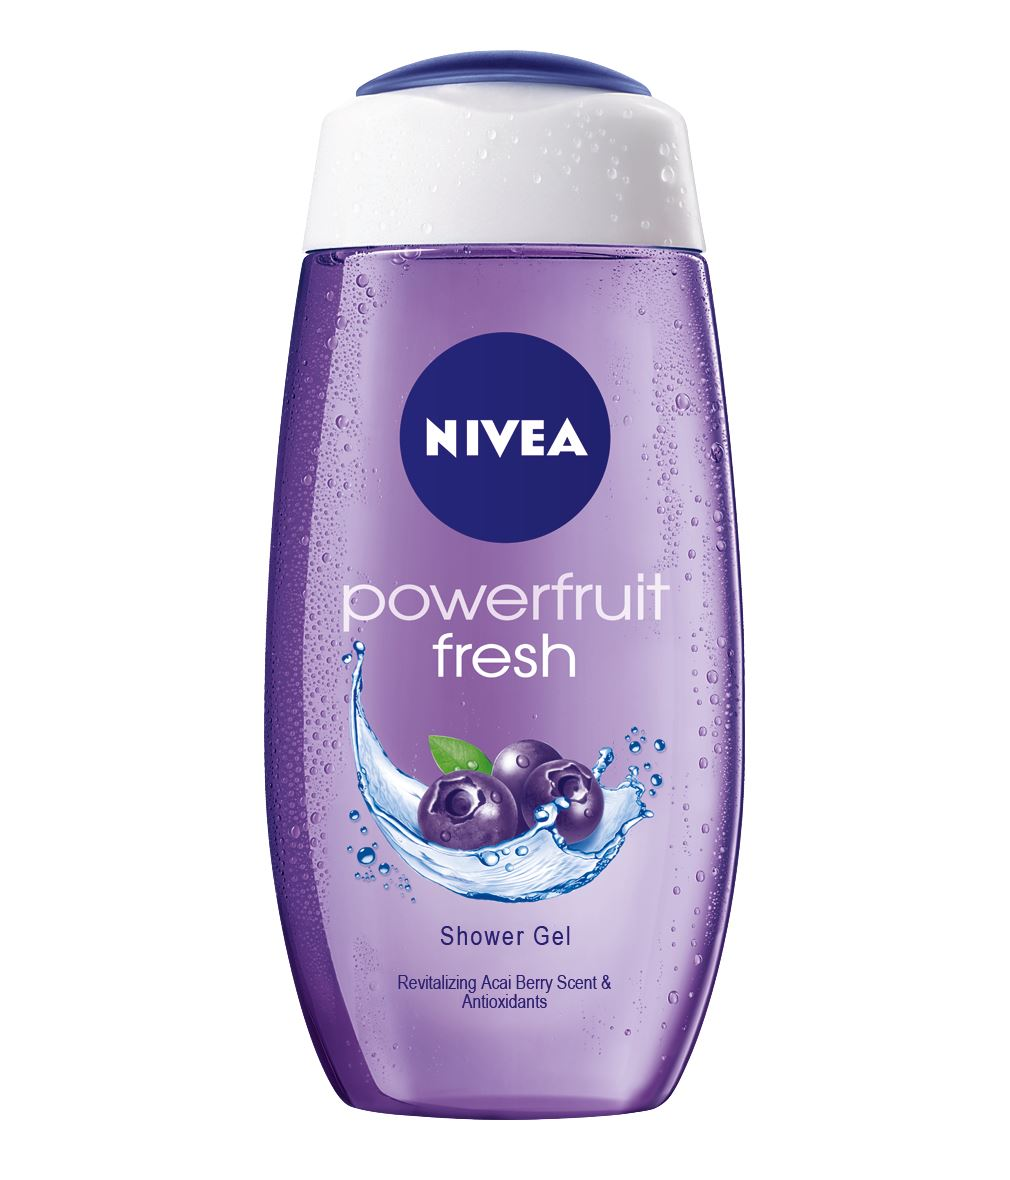 NIVEA Powerfruit Fresh tusfürdő 250ml 749Ft